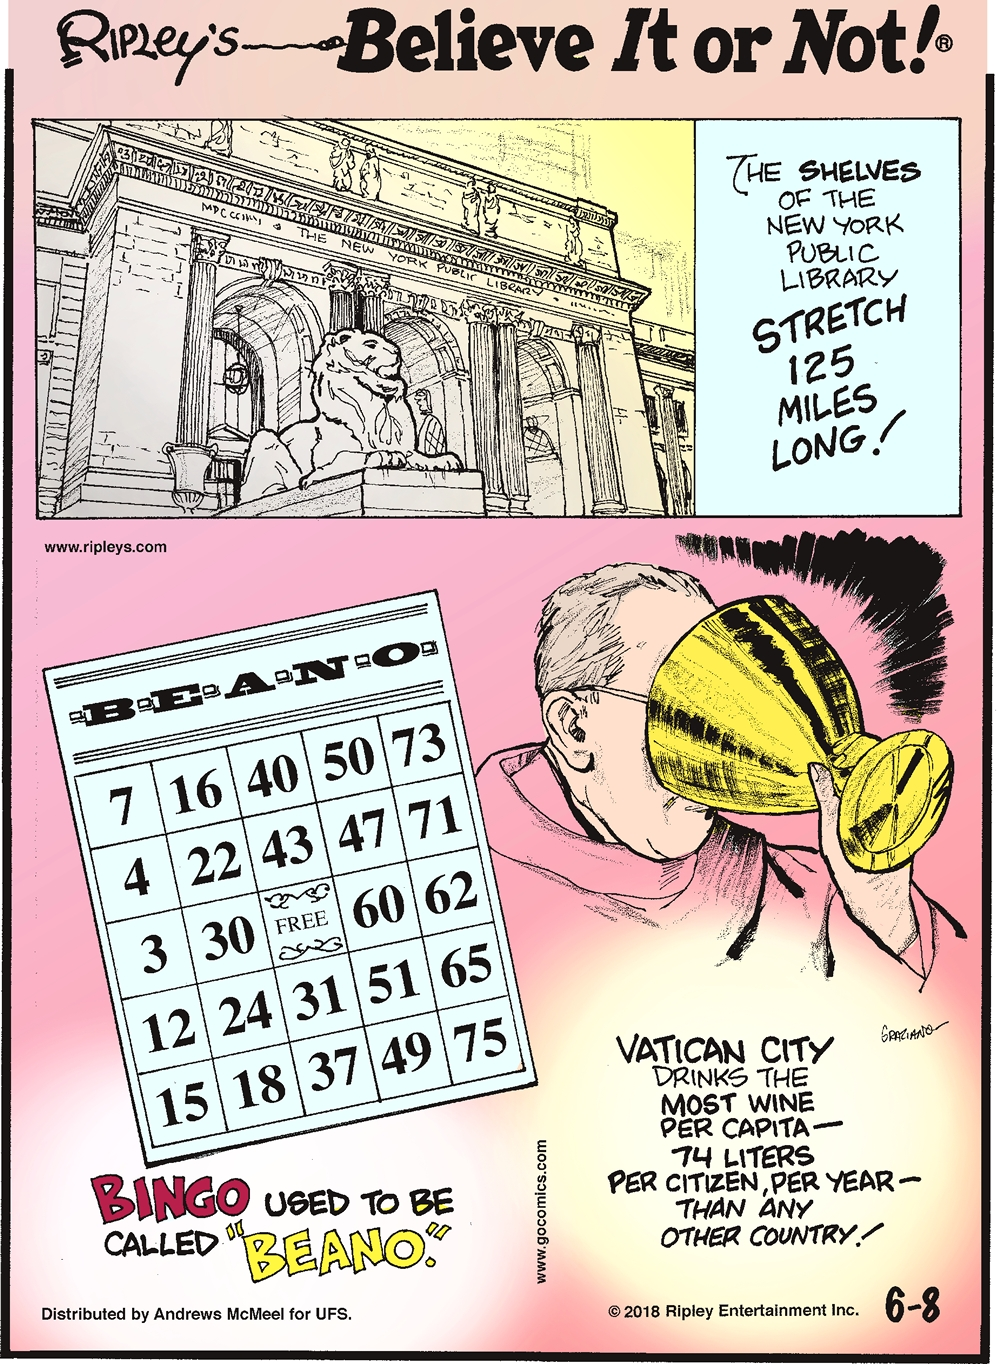 """The shelves of the New York Public Library stretch 125 miles long!--------------------- Bingo used to be called """"Beano.""""-------------------- Vatican City drinks the most wine per capita - 74 liters per citizen, per year - than any other country!"""